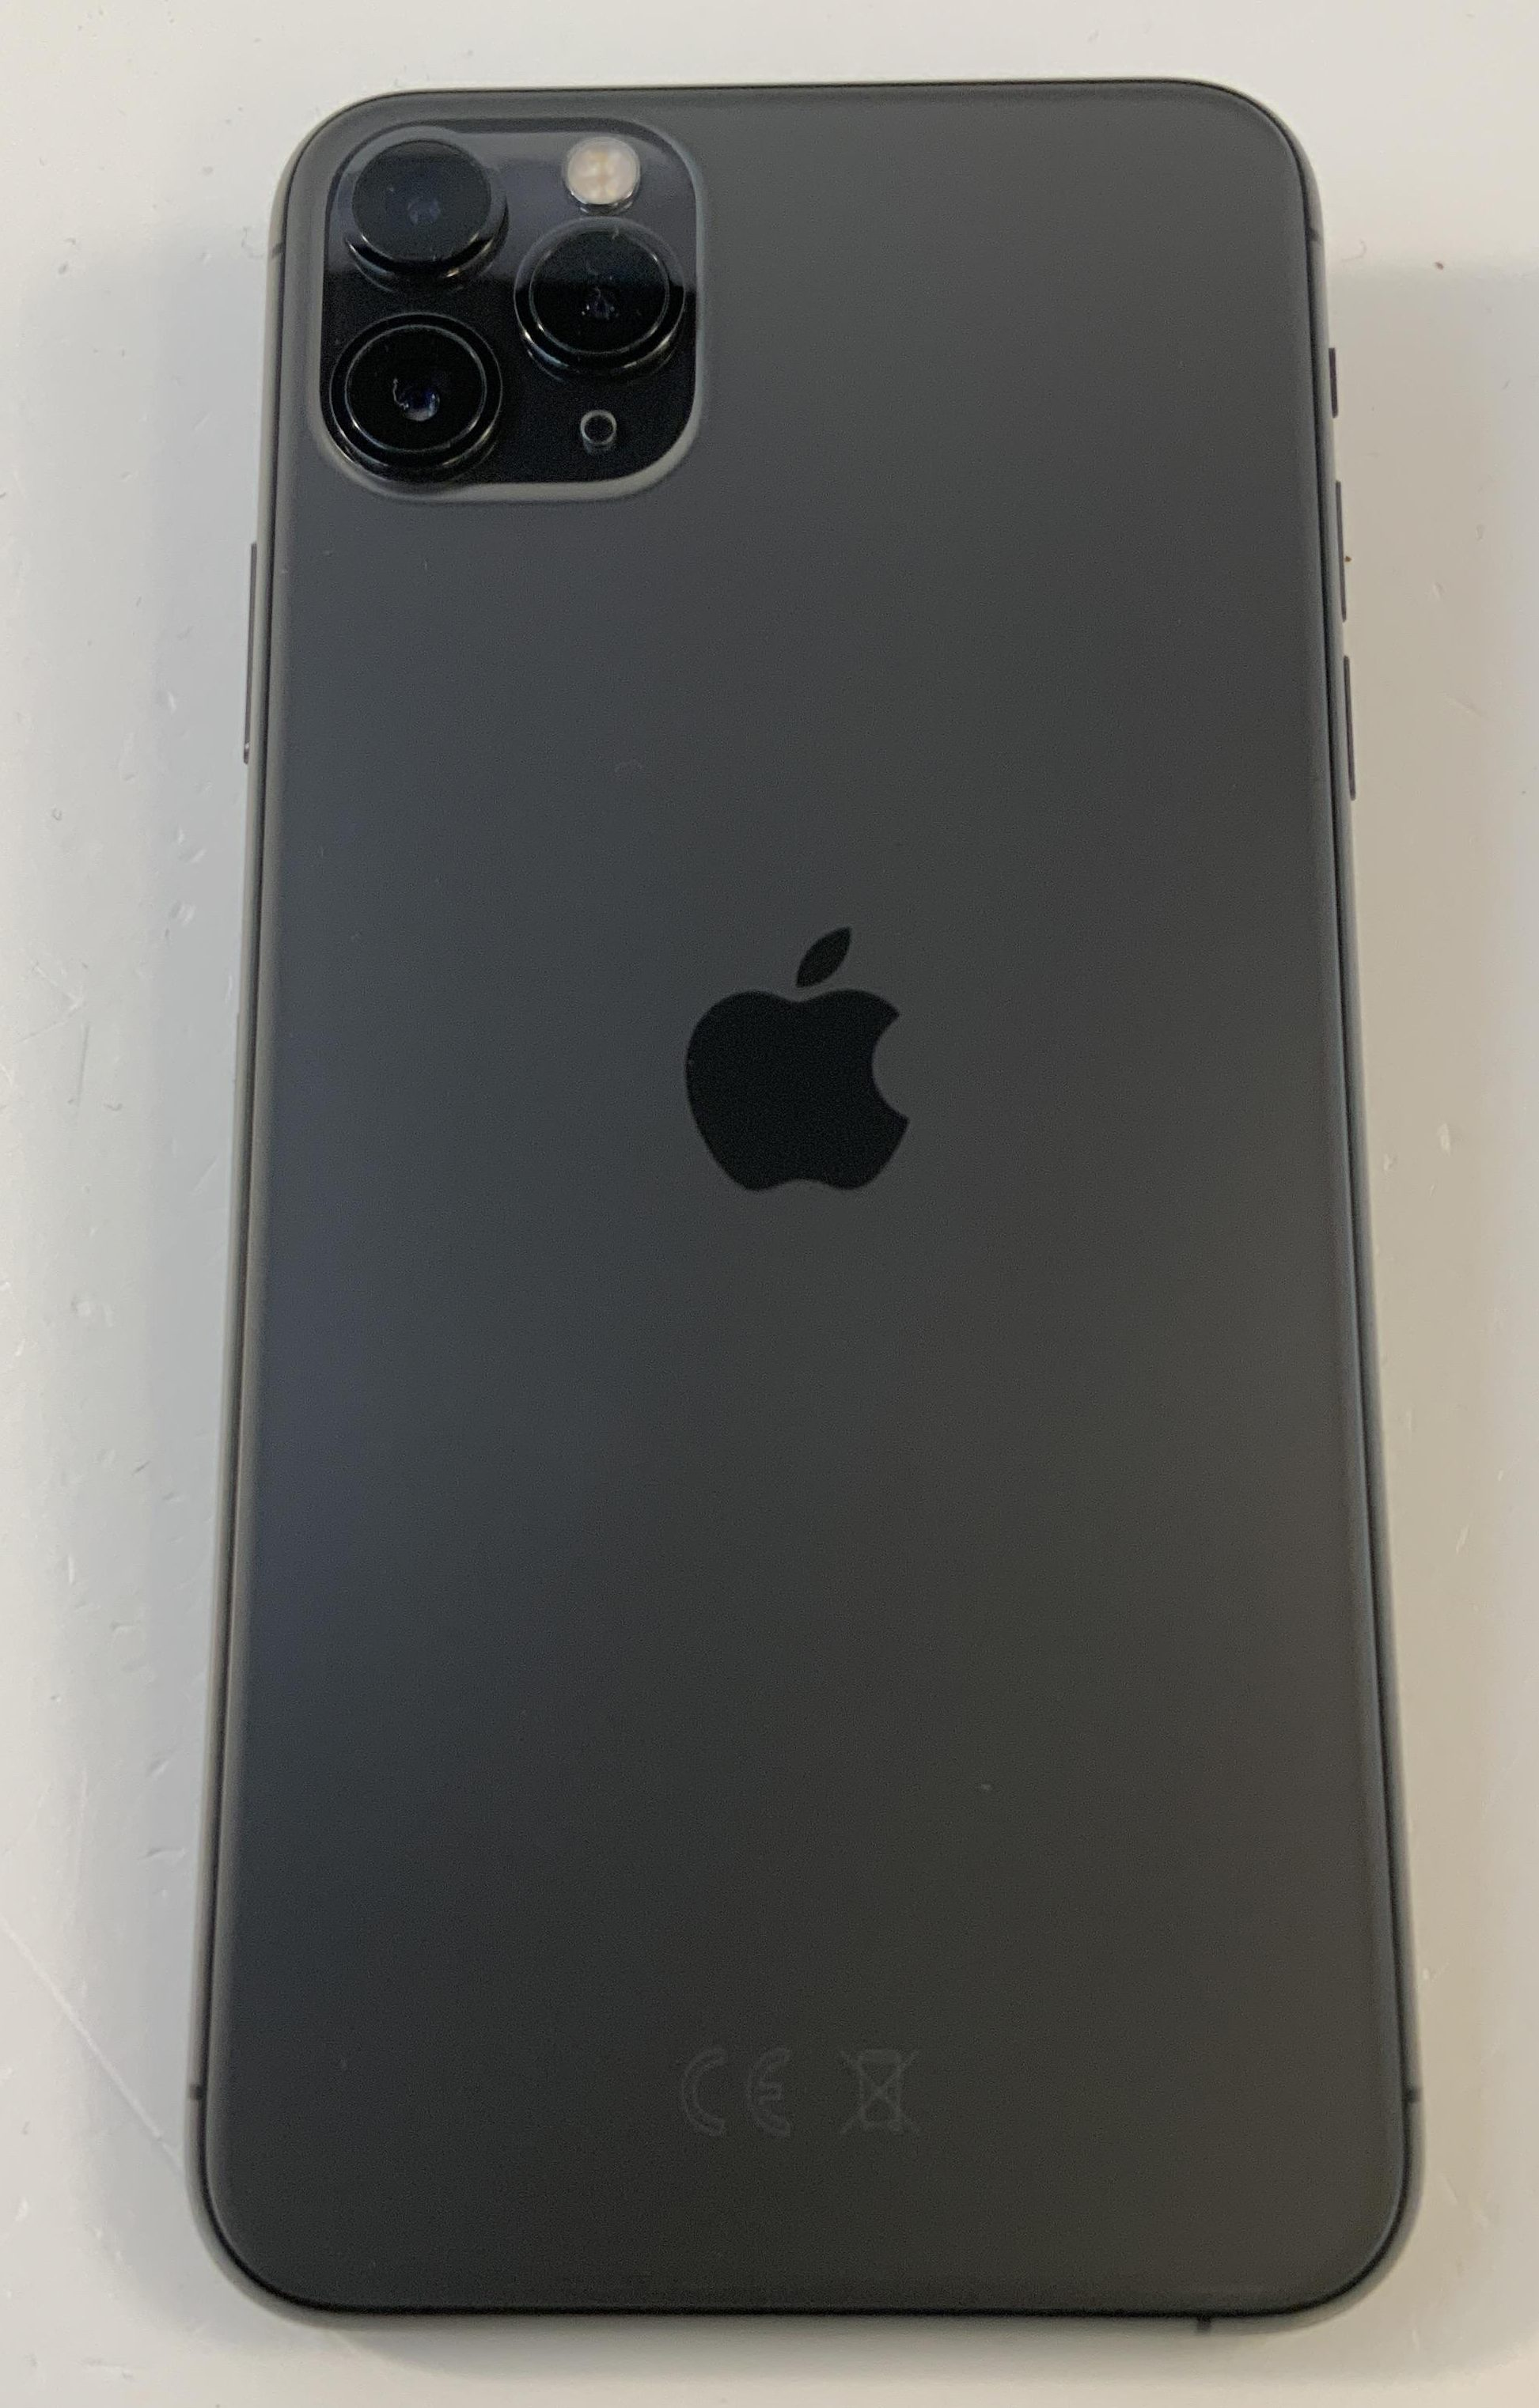 iPhone 11 Pro Max 256GB, 256GB, Space Gray, image 2